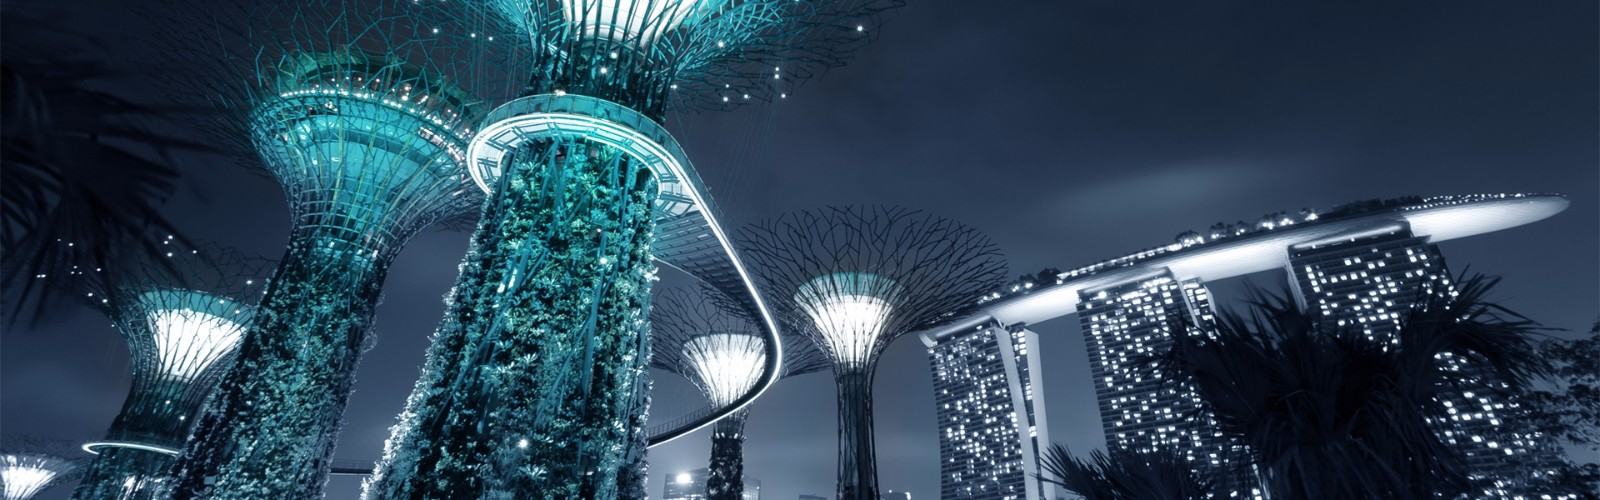 Gardens By the Bay Tour | Wendy Wu Tours